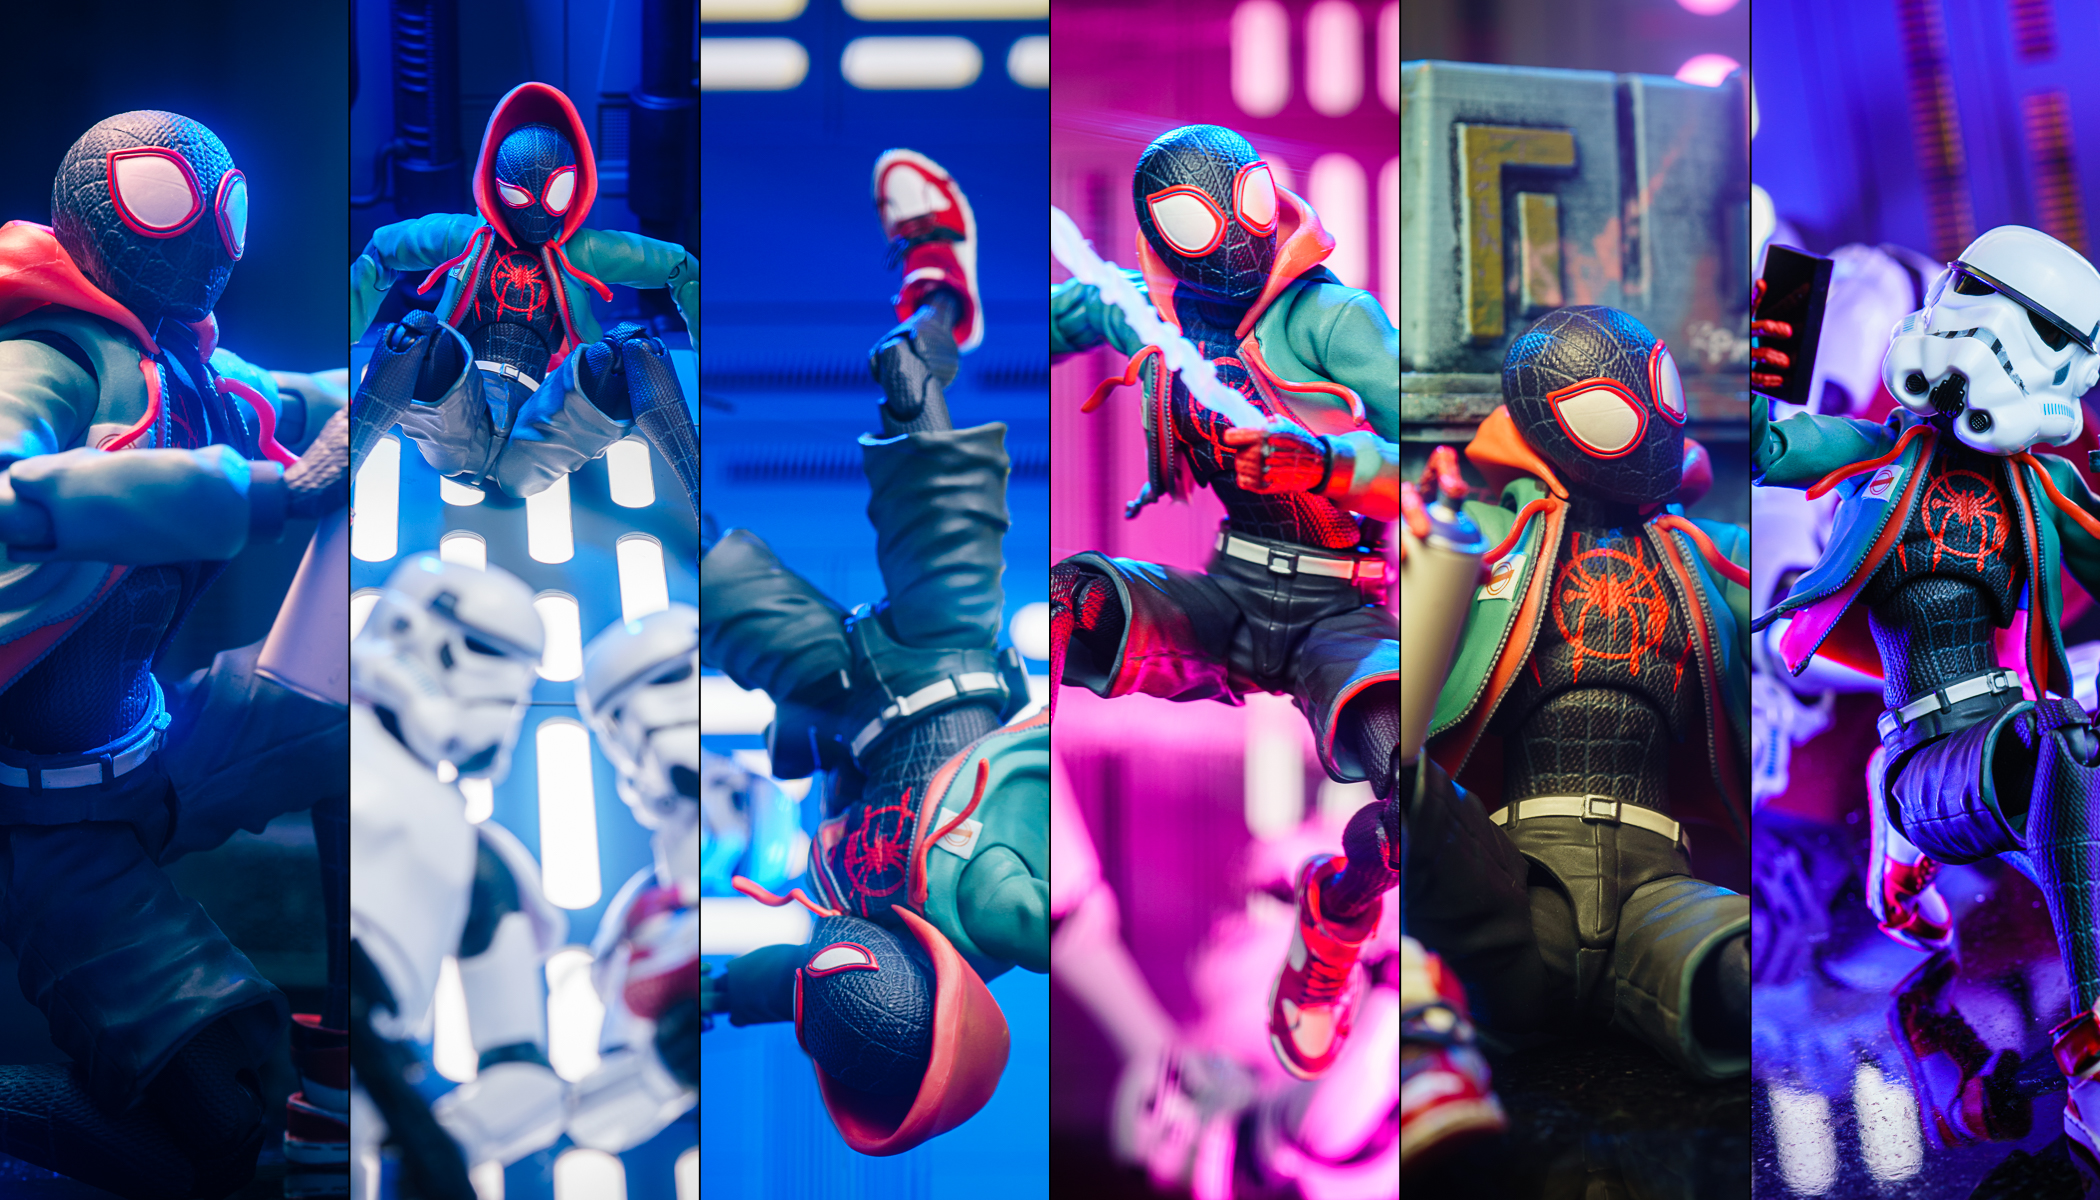 6IN - Into the Spider-Verse